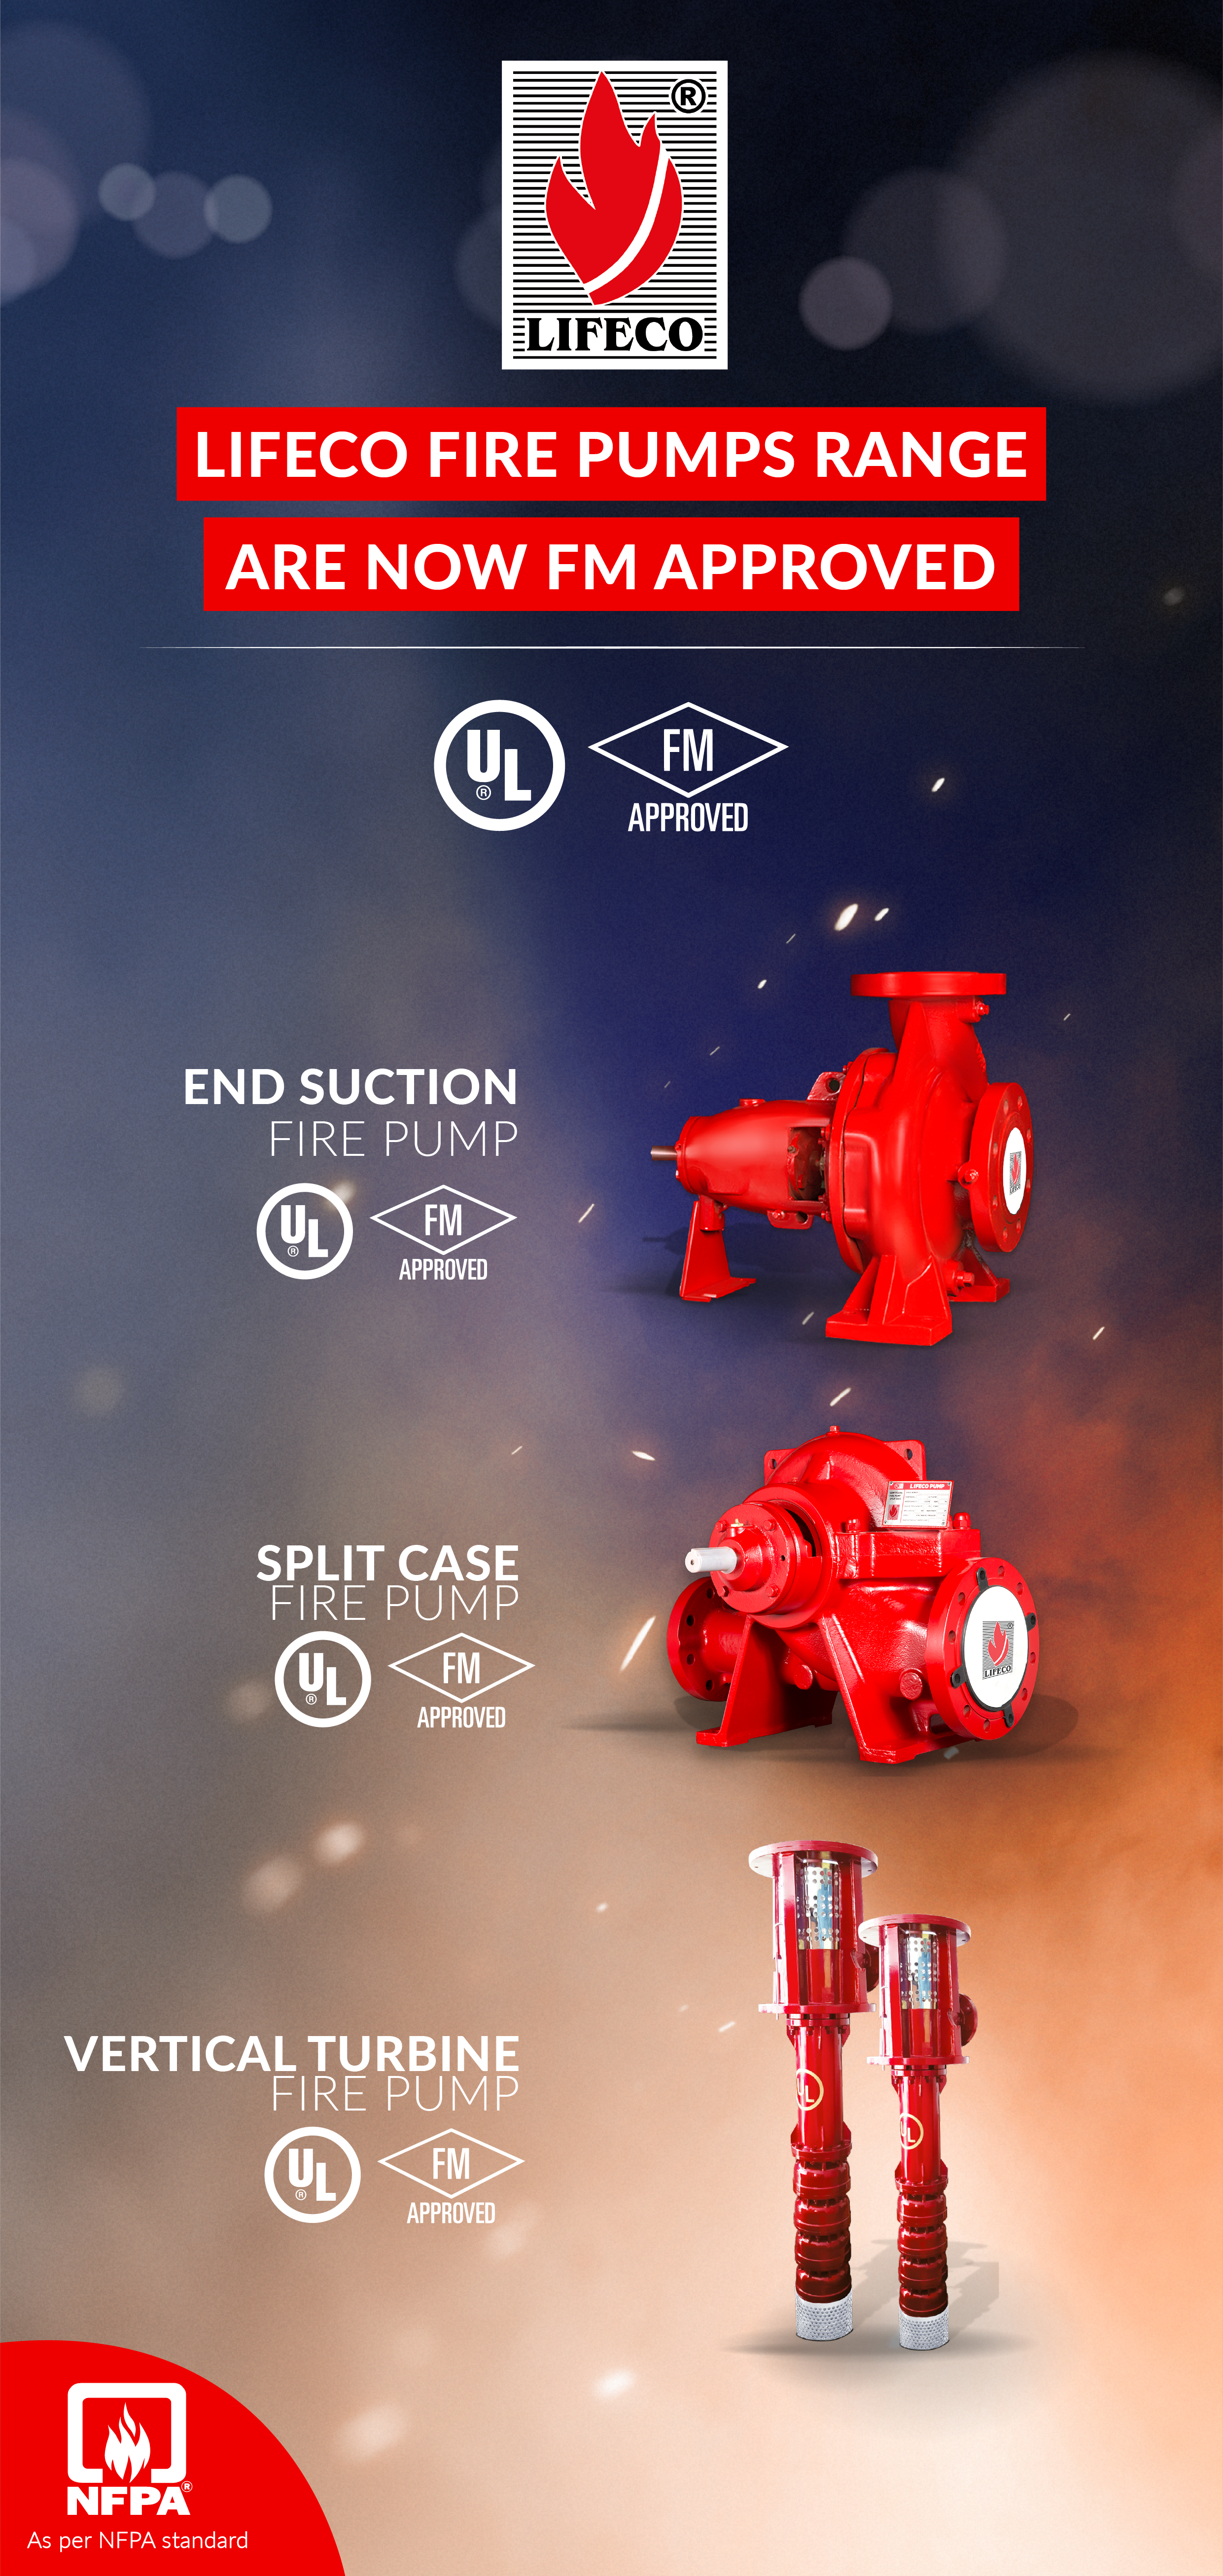 LIFECO FIRE PUMPS RANGEARE NOW FM APPROVED!